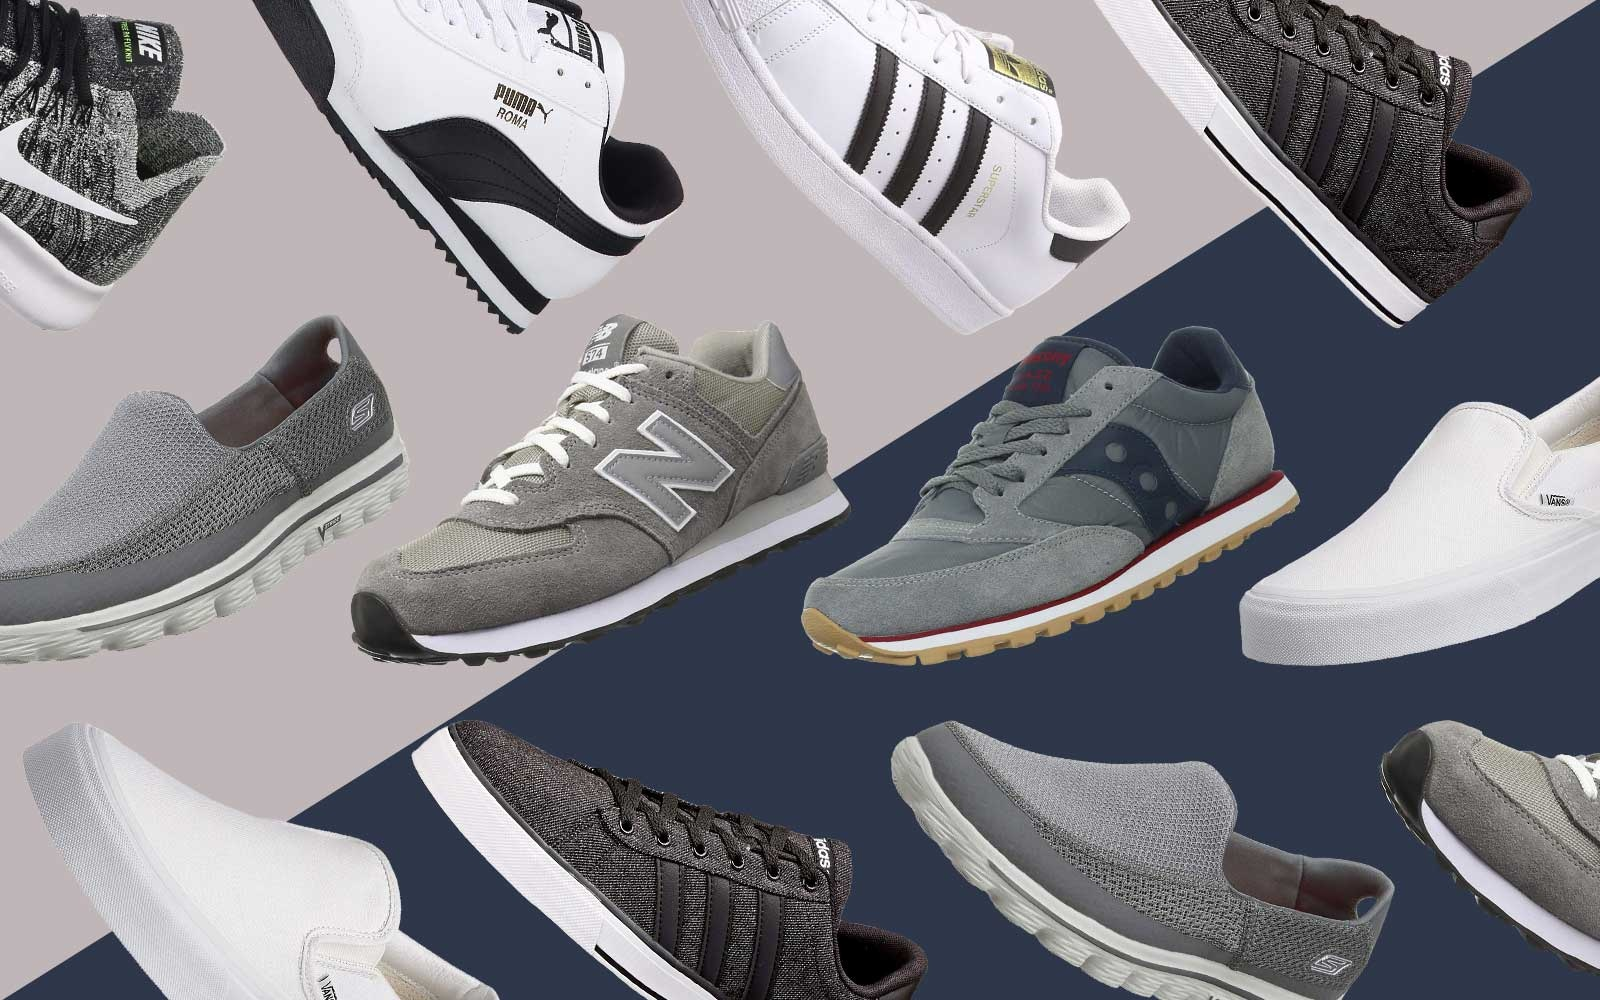 53c45a5ceac27 These Are the 15 Most Comfortable Men's Sneakers You Can Get on ...